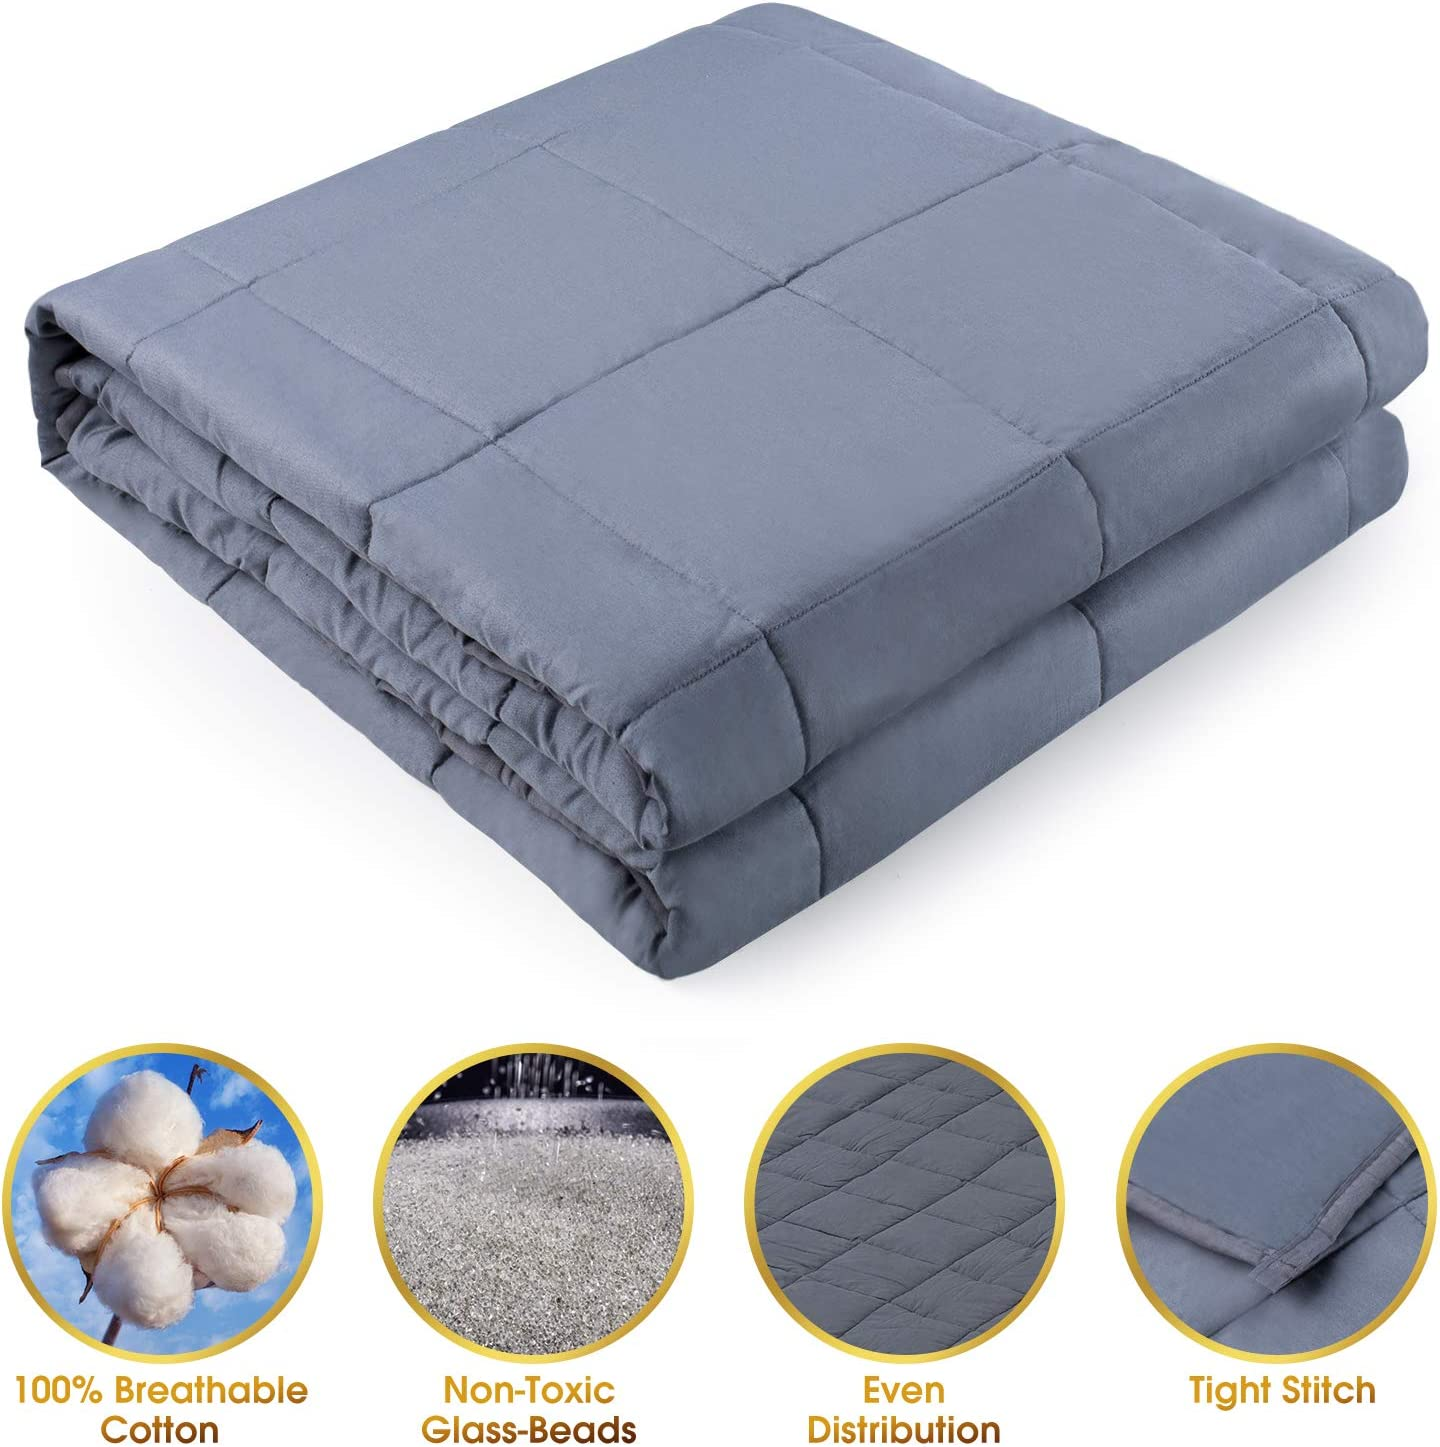 Alomidds Weighted Blanket 5 lbs 5lbs-36x48 Grey 36x48 Heavy Blanket for Kids Calm Sleeping 100/% Cotton Material with Nontoxic Glass Beads